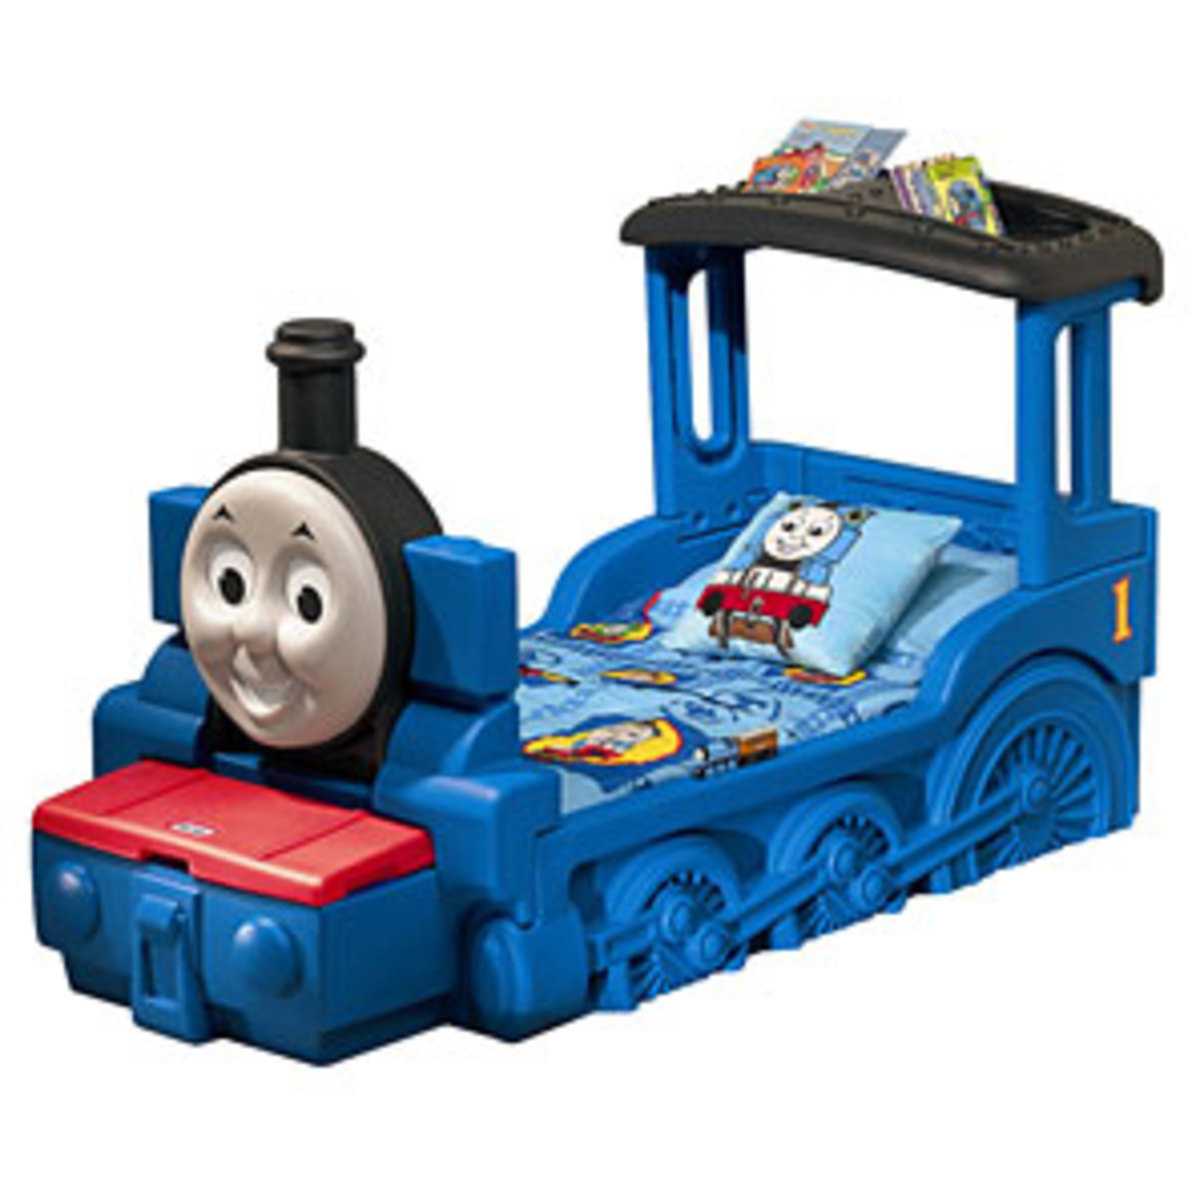 Thomas The Tank Engine Bed and Bedroom Set